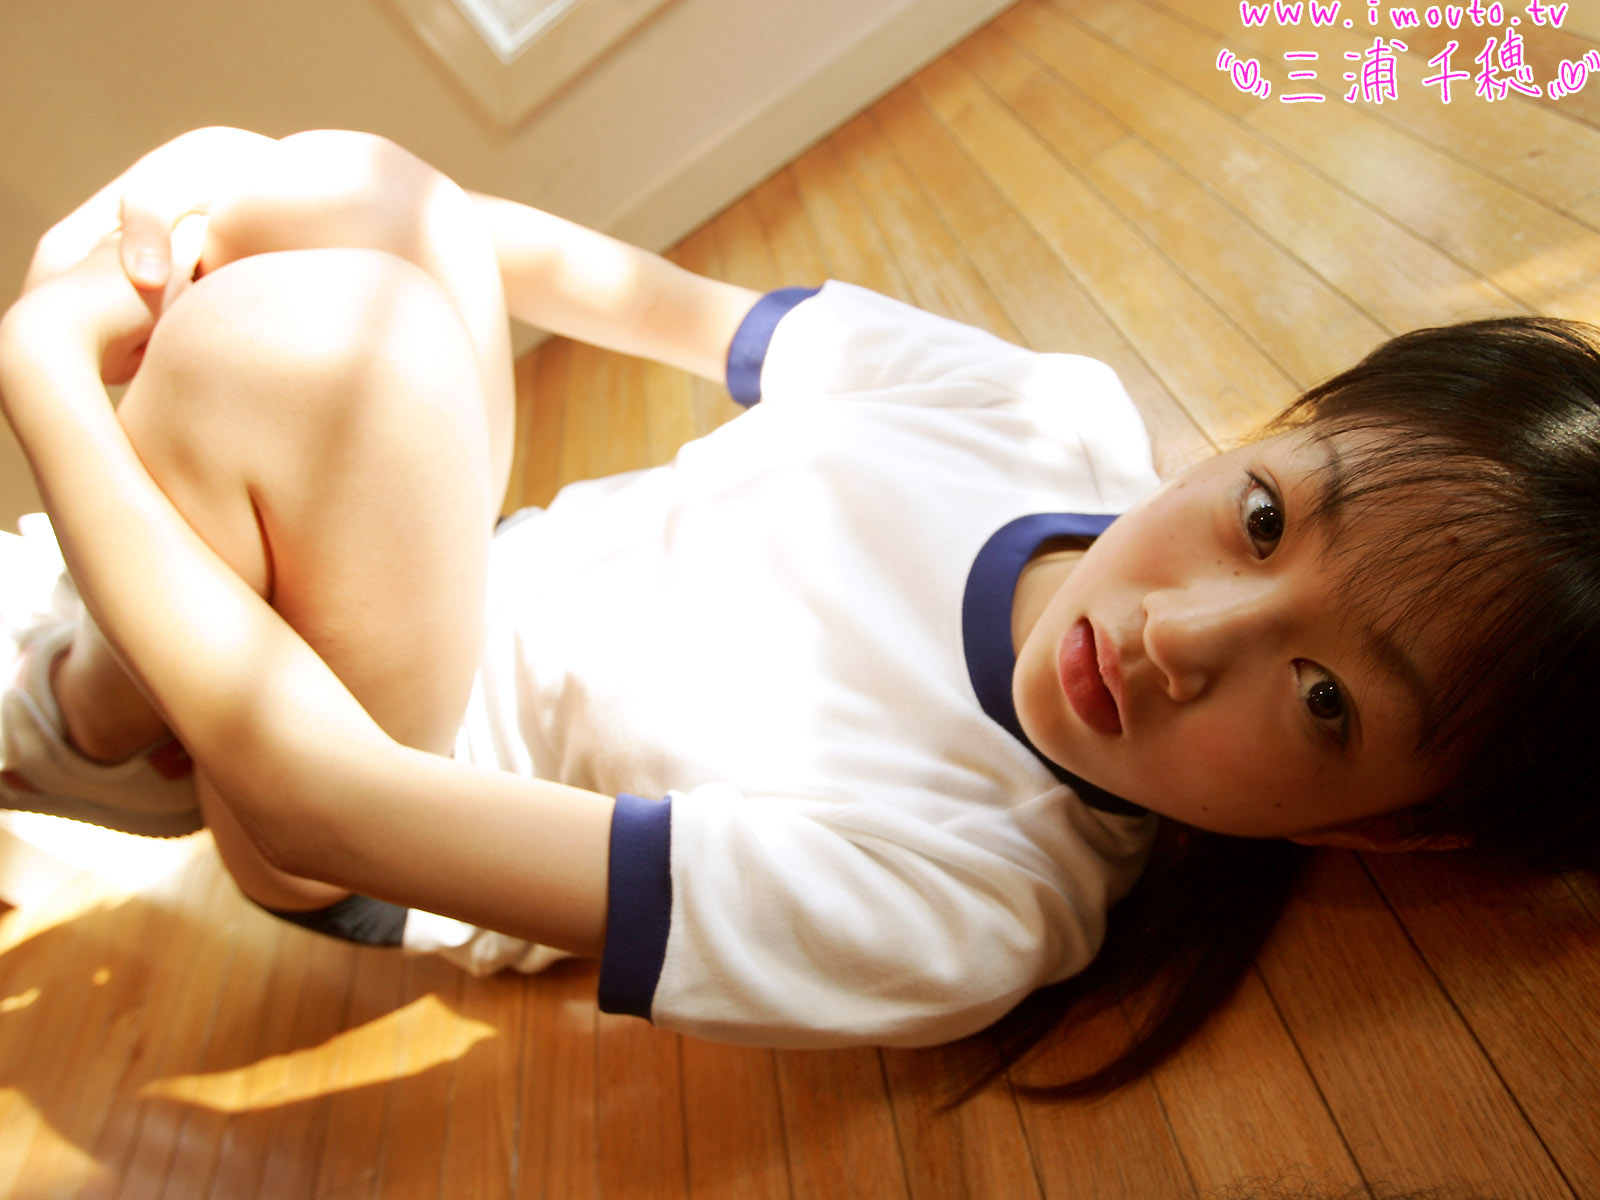 u15 junior idol japanese gravure idol girls